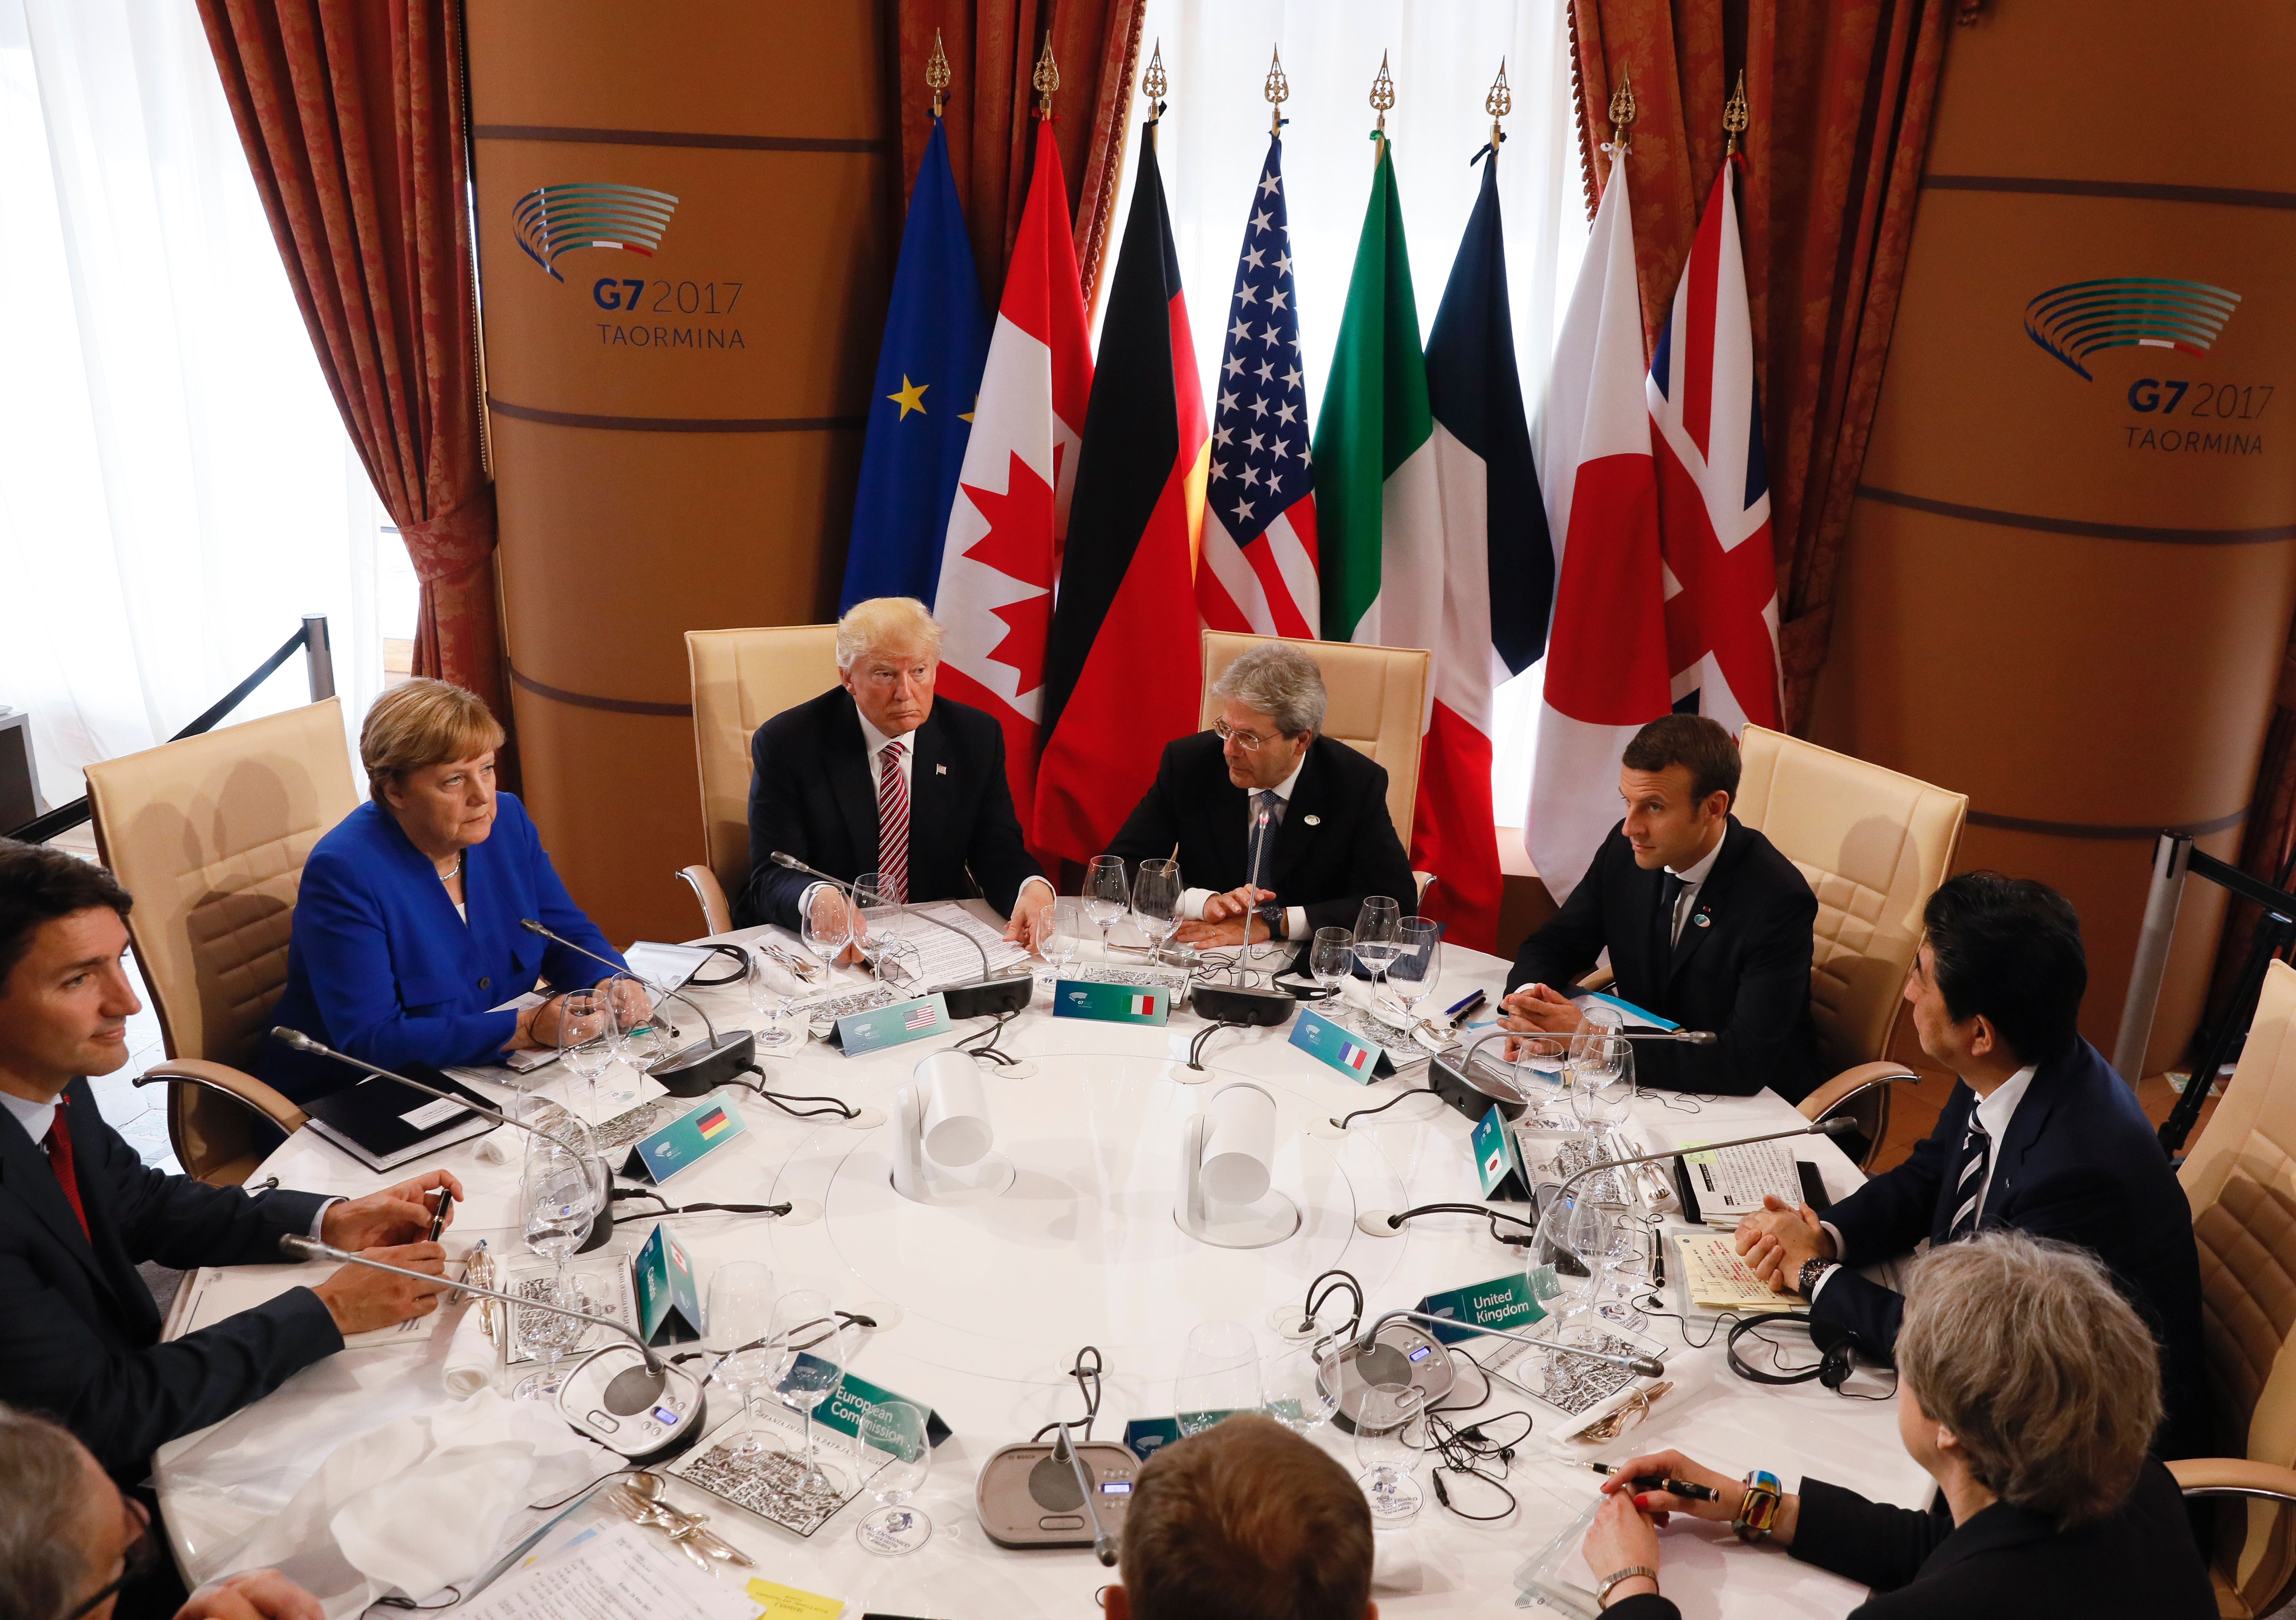 From left: Canadian Prime Minister Justin Trudeau, German Chancellor Angela Merkel, U.S. President Donald Trump, Italian Prime Minister Paolo Gentiloni, French President Emmanuel Macron, Japanese Prime Minister Shinzo Abe, Britains Prime Minister Theresa May, European Council President Donald Tusk and European Commission President Jean-Claude Juncker sit around a table during the G7 Summit of the Heads of State and of Government in Taormina, Sicily, on May 26, 2017.